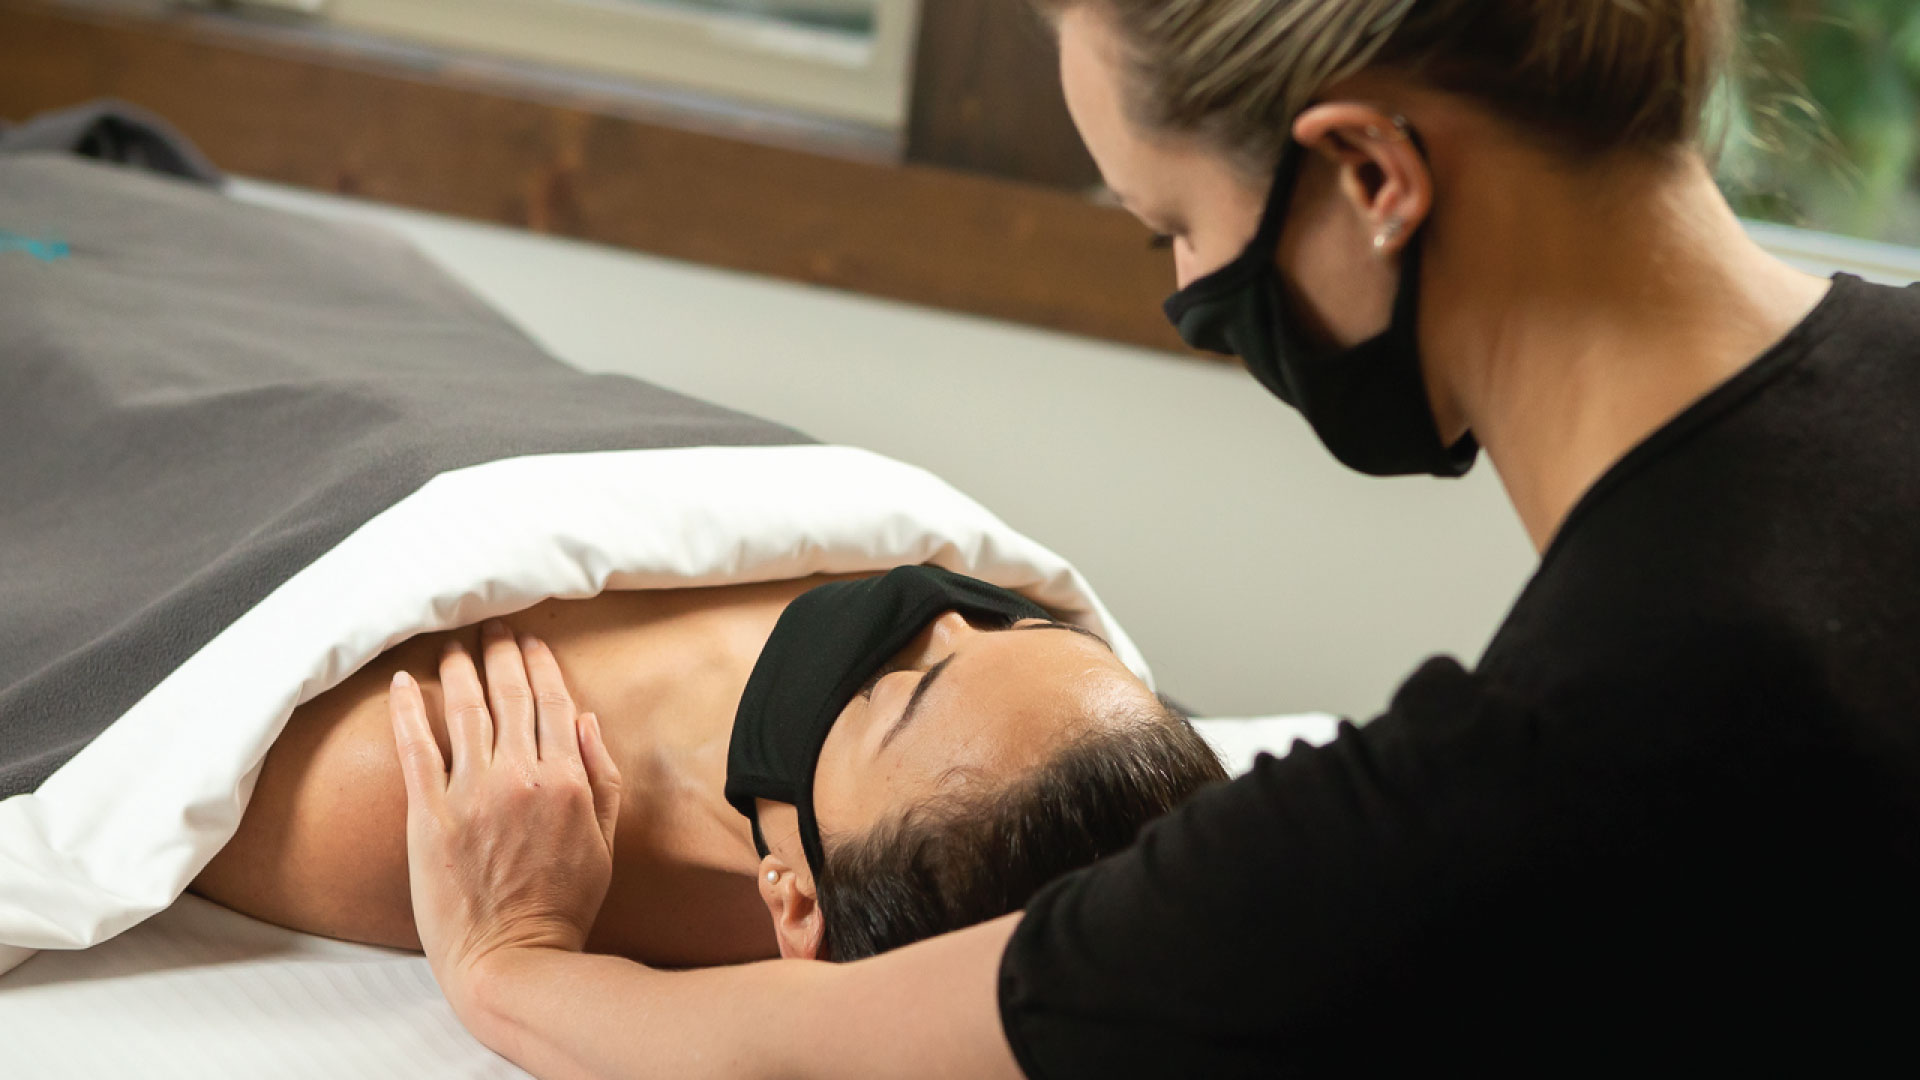 Woman giving a massage. Both people are wearing masks for COVID 19 safety at Scandinave Spa